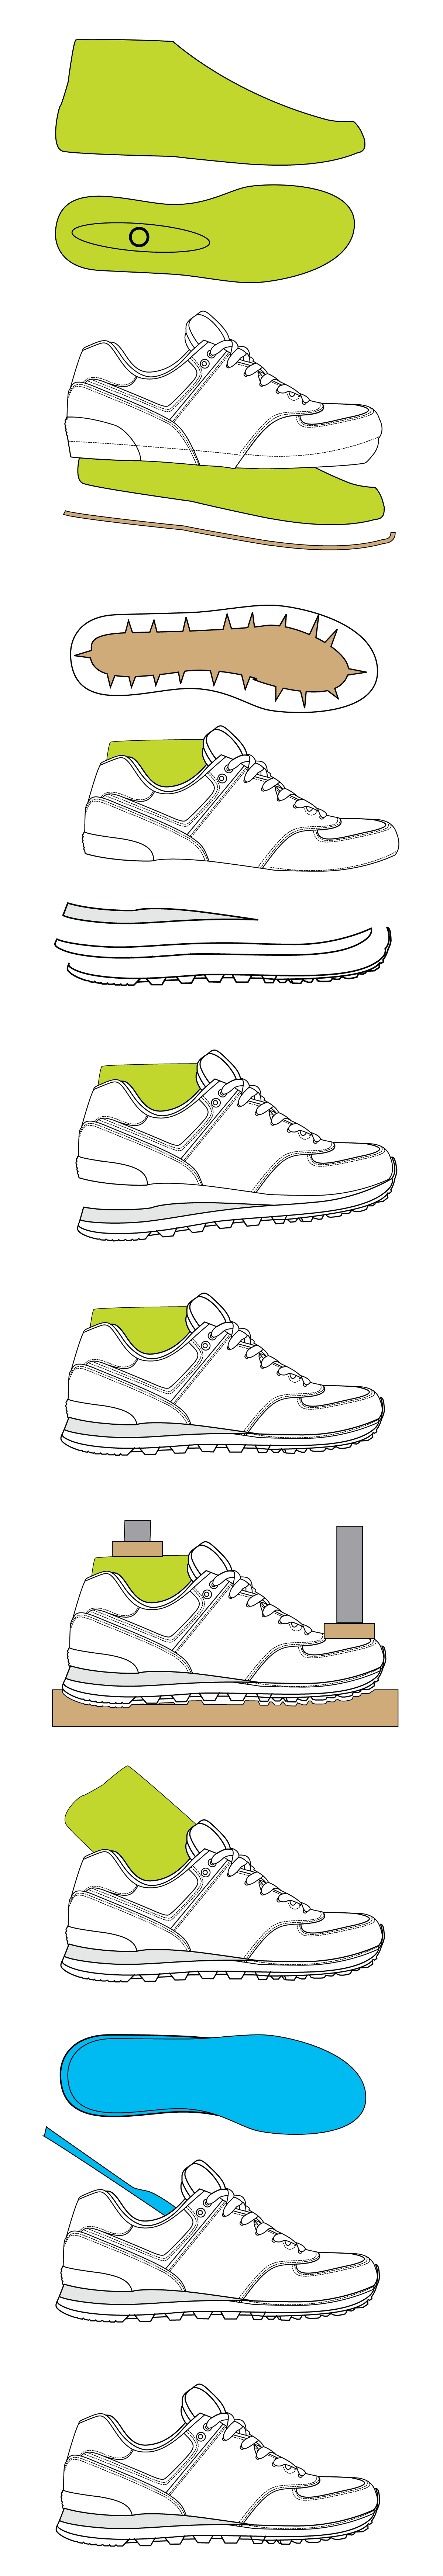 What is the Process of Making New Balance Shoes